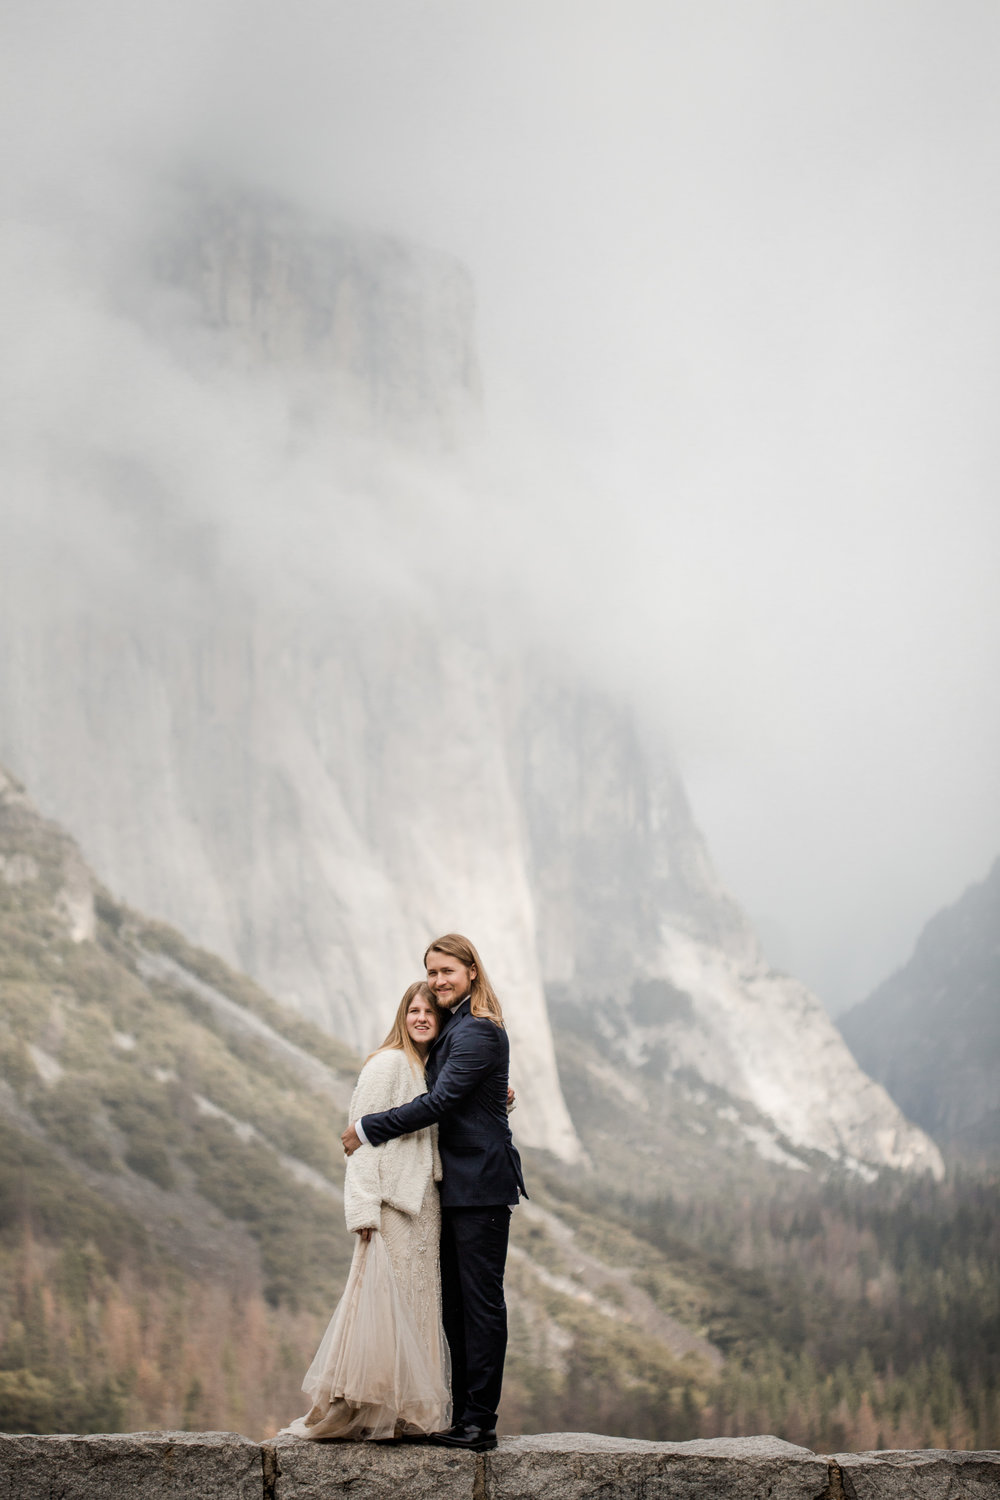 nicole-daacke-photography-yousemite-national-park-elopement-photographer-winter-cloud-moody-elope-inspiration-yosemite-valley-tunnel-view-winter-cloud-fog-weather-wedding-photos-4.jpg